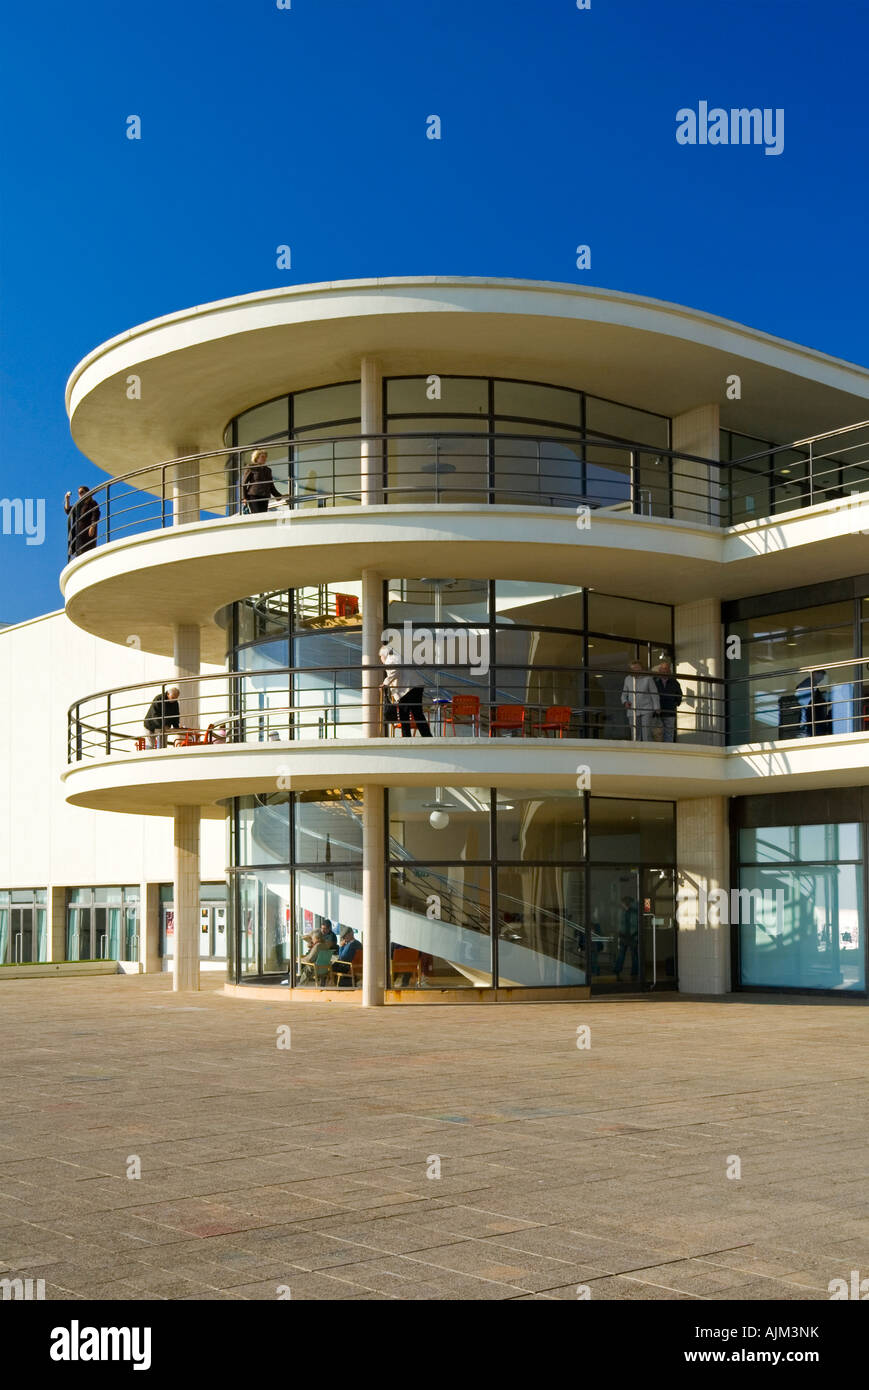 Exterior of the De La Warr Pavilion in Bexhill on Sea East Sussex UK designed by Erich Mendelsohn and Serge Chermayeff - Stock Image